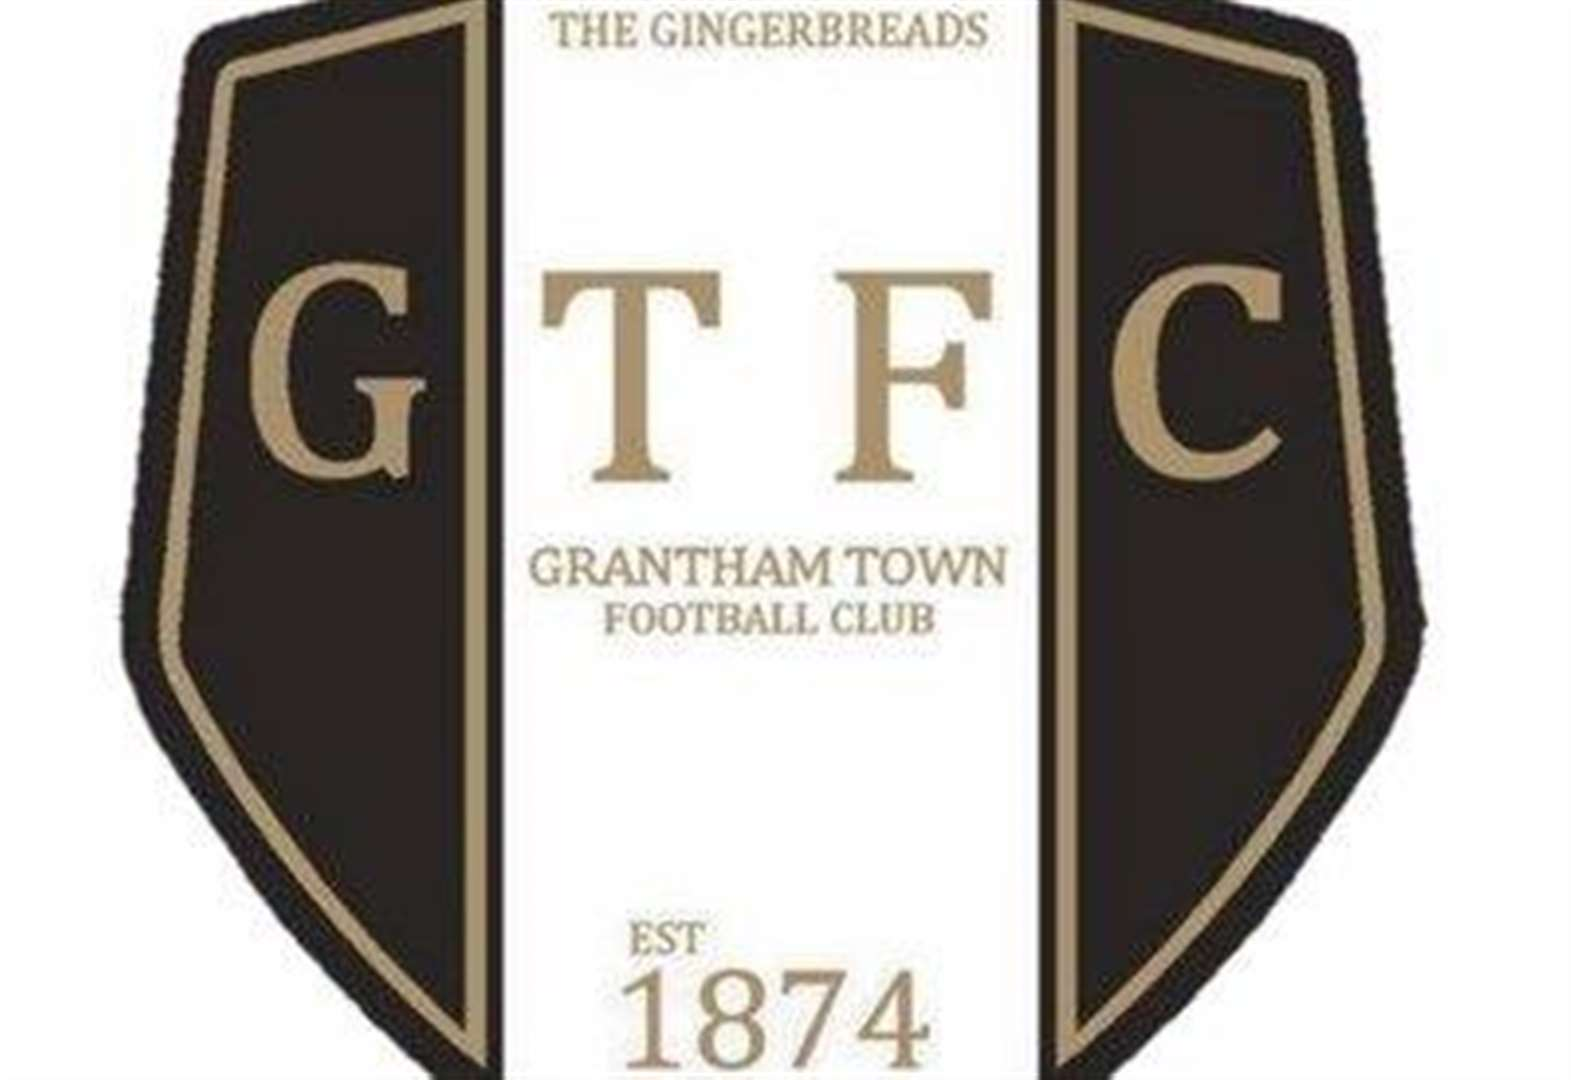 Thomas appointed as new Gingerbreads manager